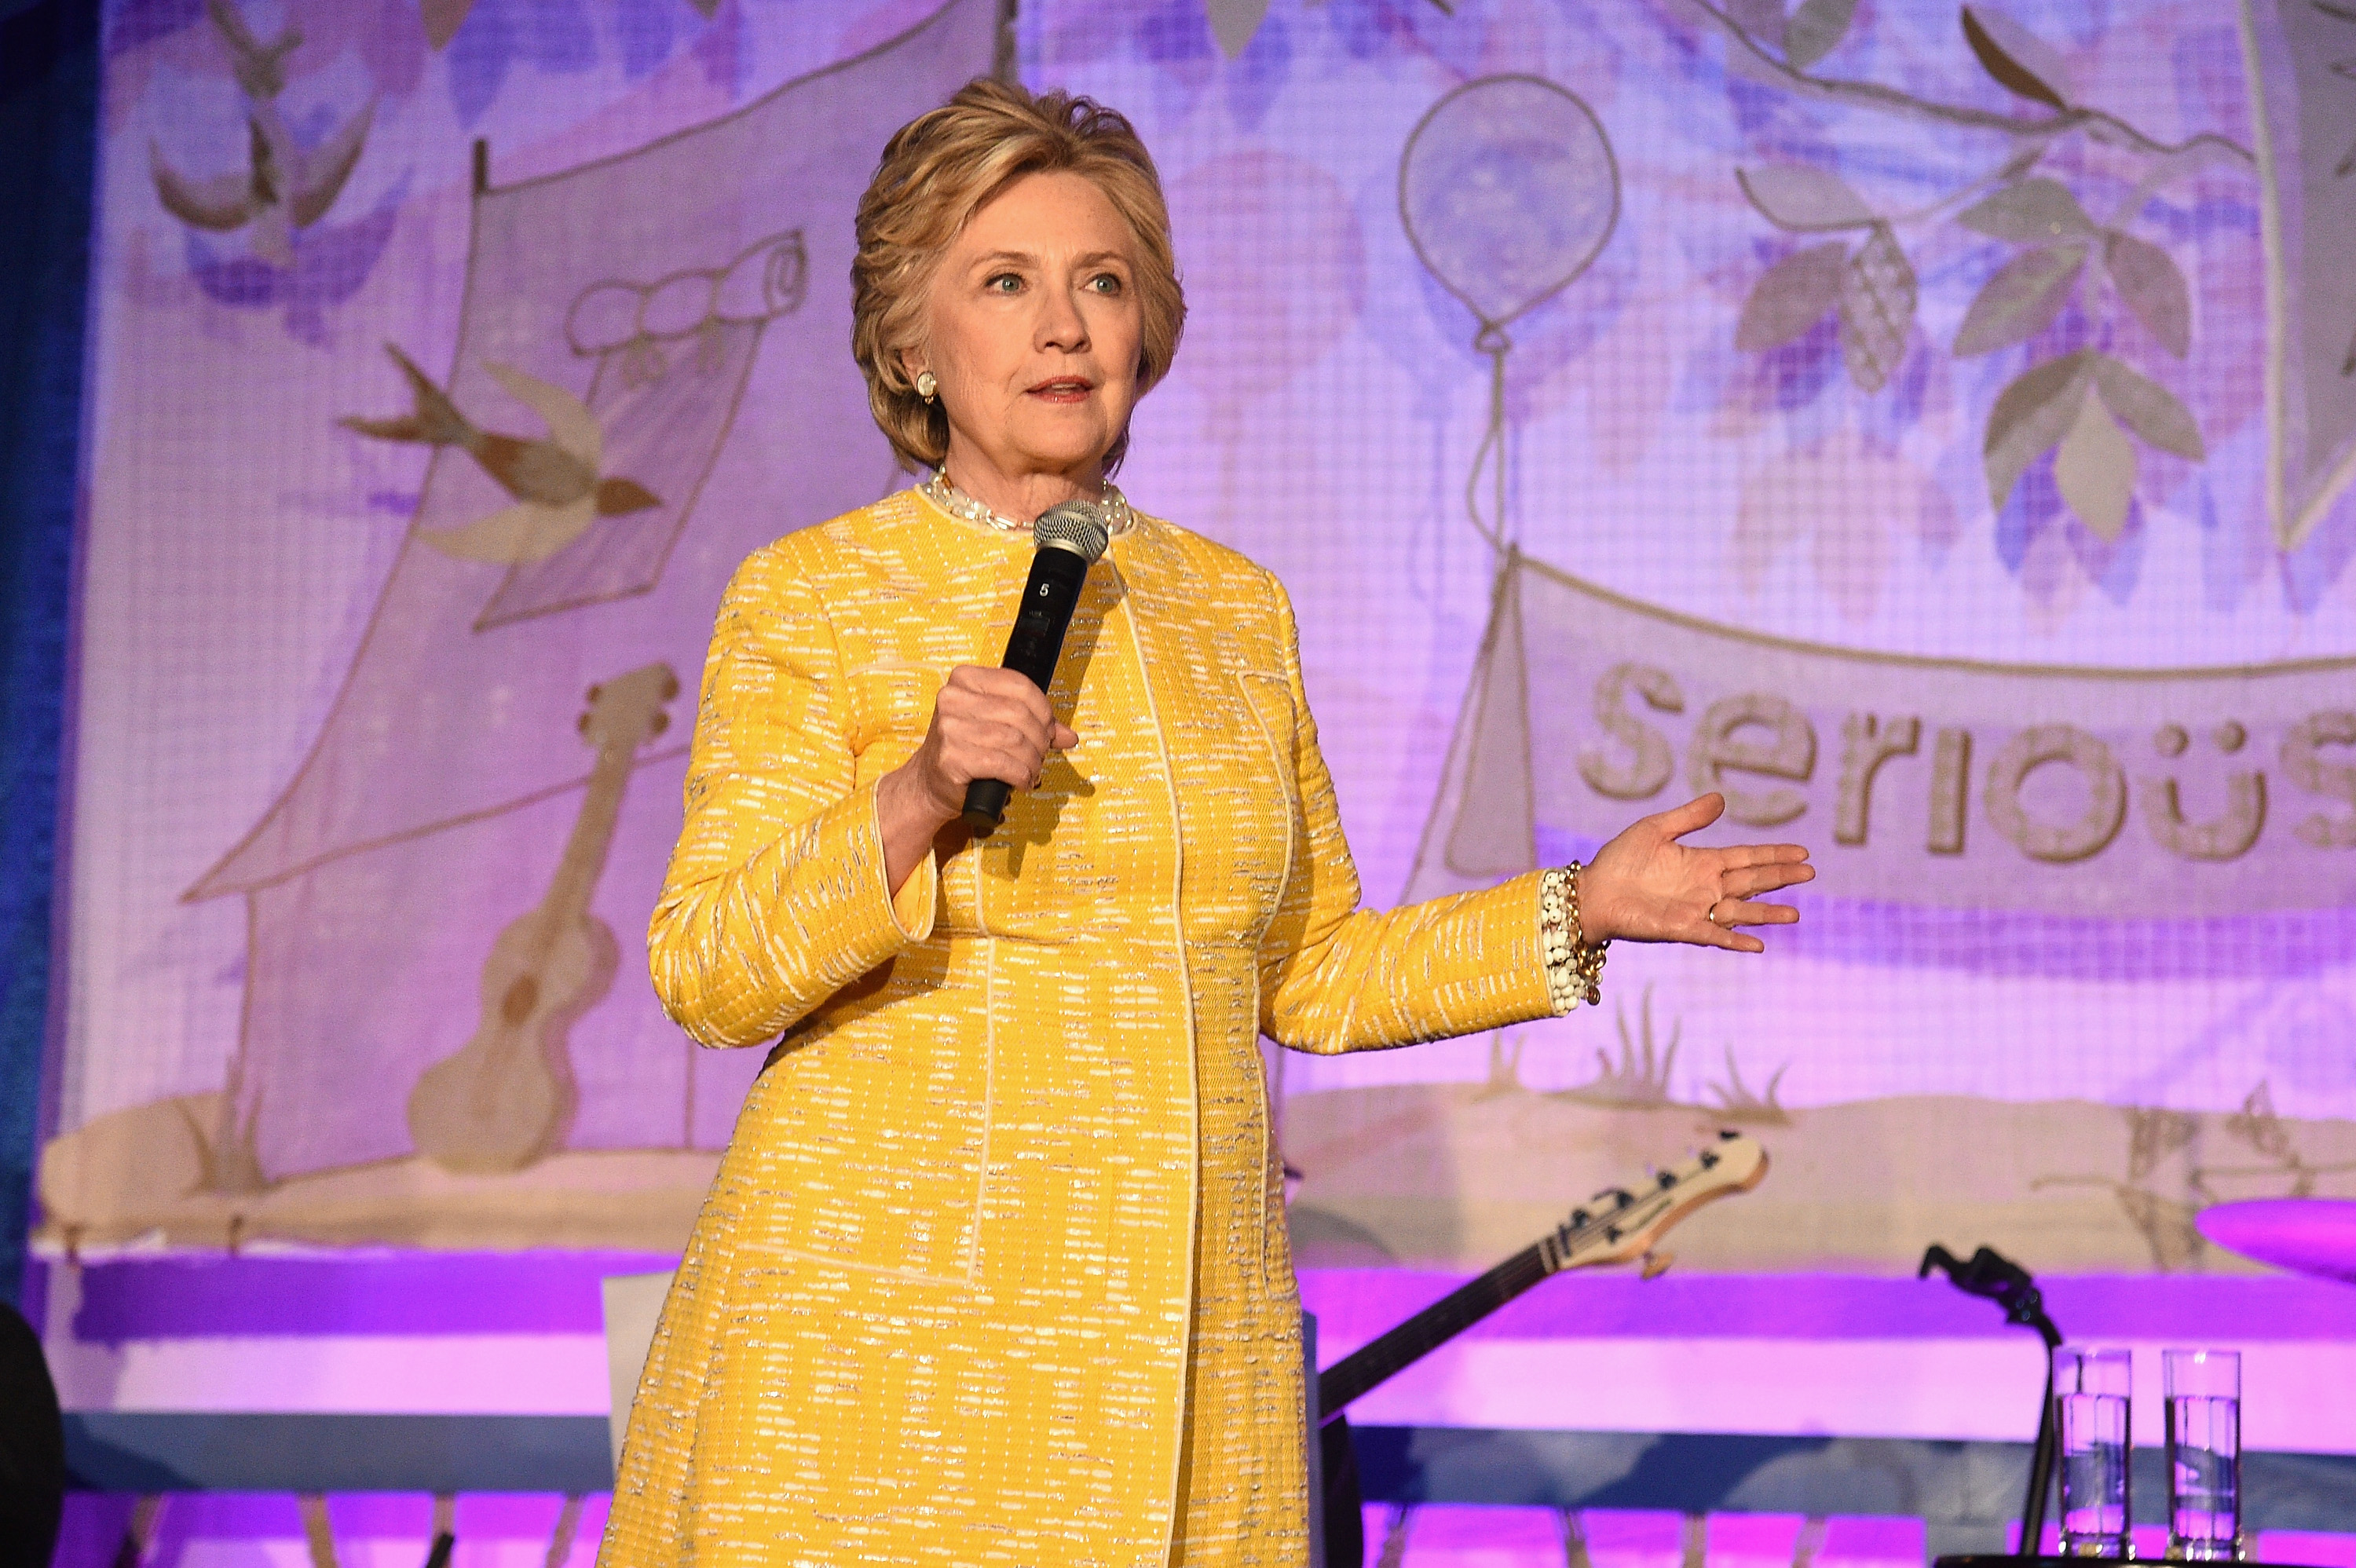 Former U.S. Secretary of State Hillary Clinton speaks onstage during the SeriousFun Children's Network Gala at Pier 60 on May 23, 2017 in New York City.